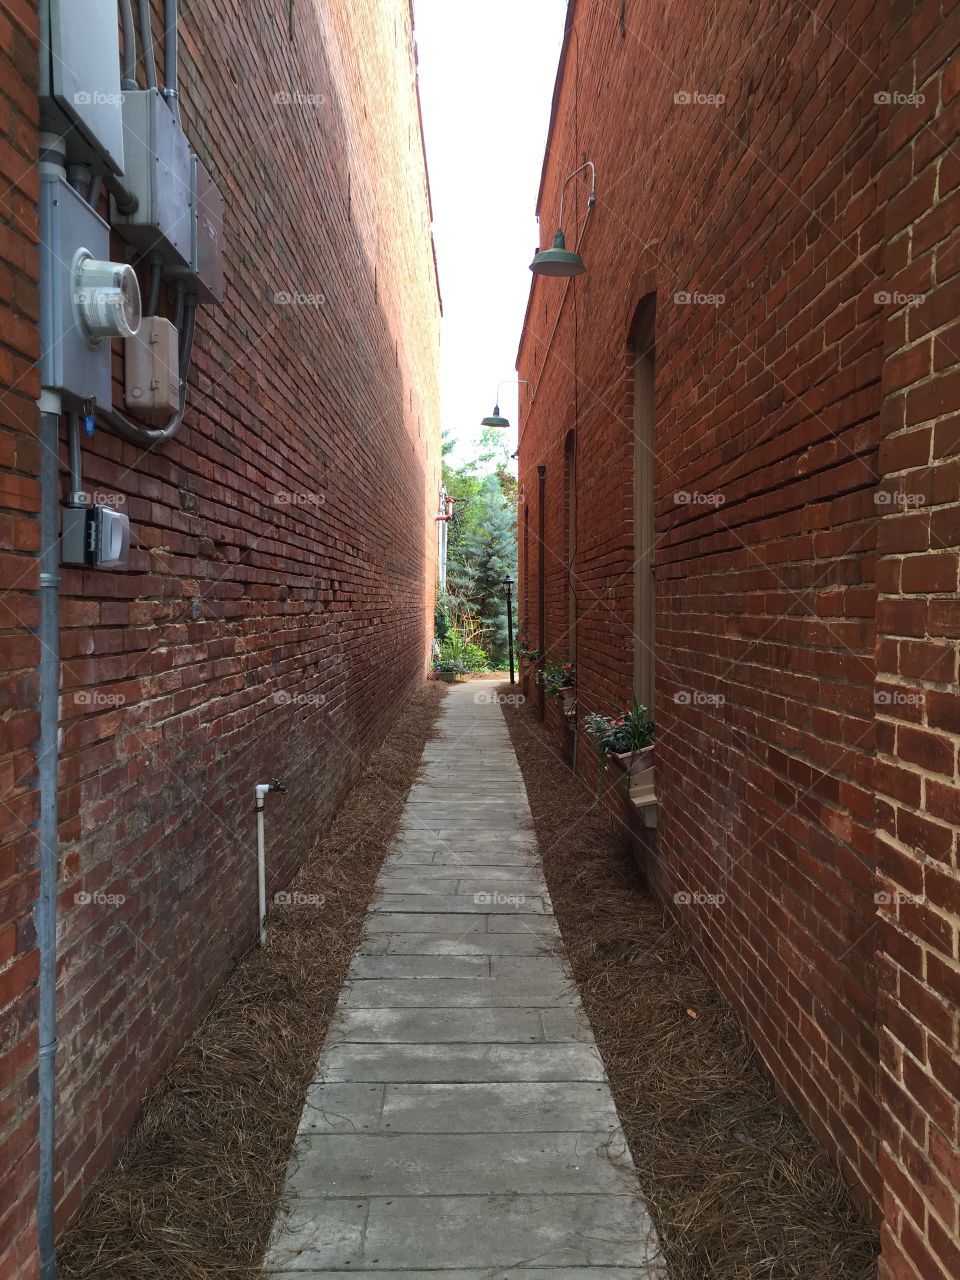 Alley way between two historic buildings in Plains, Georgia.